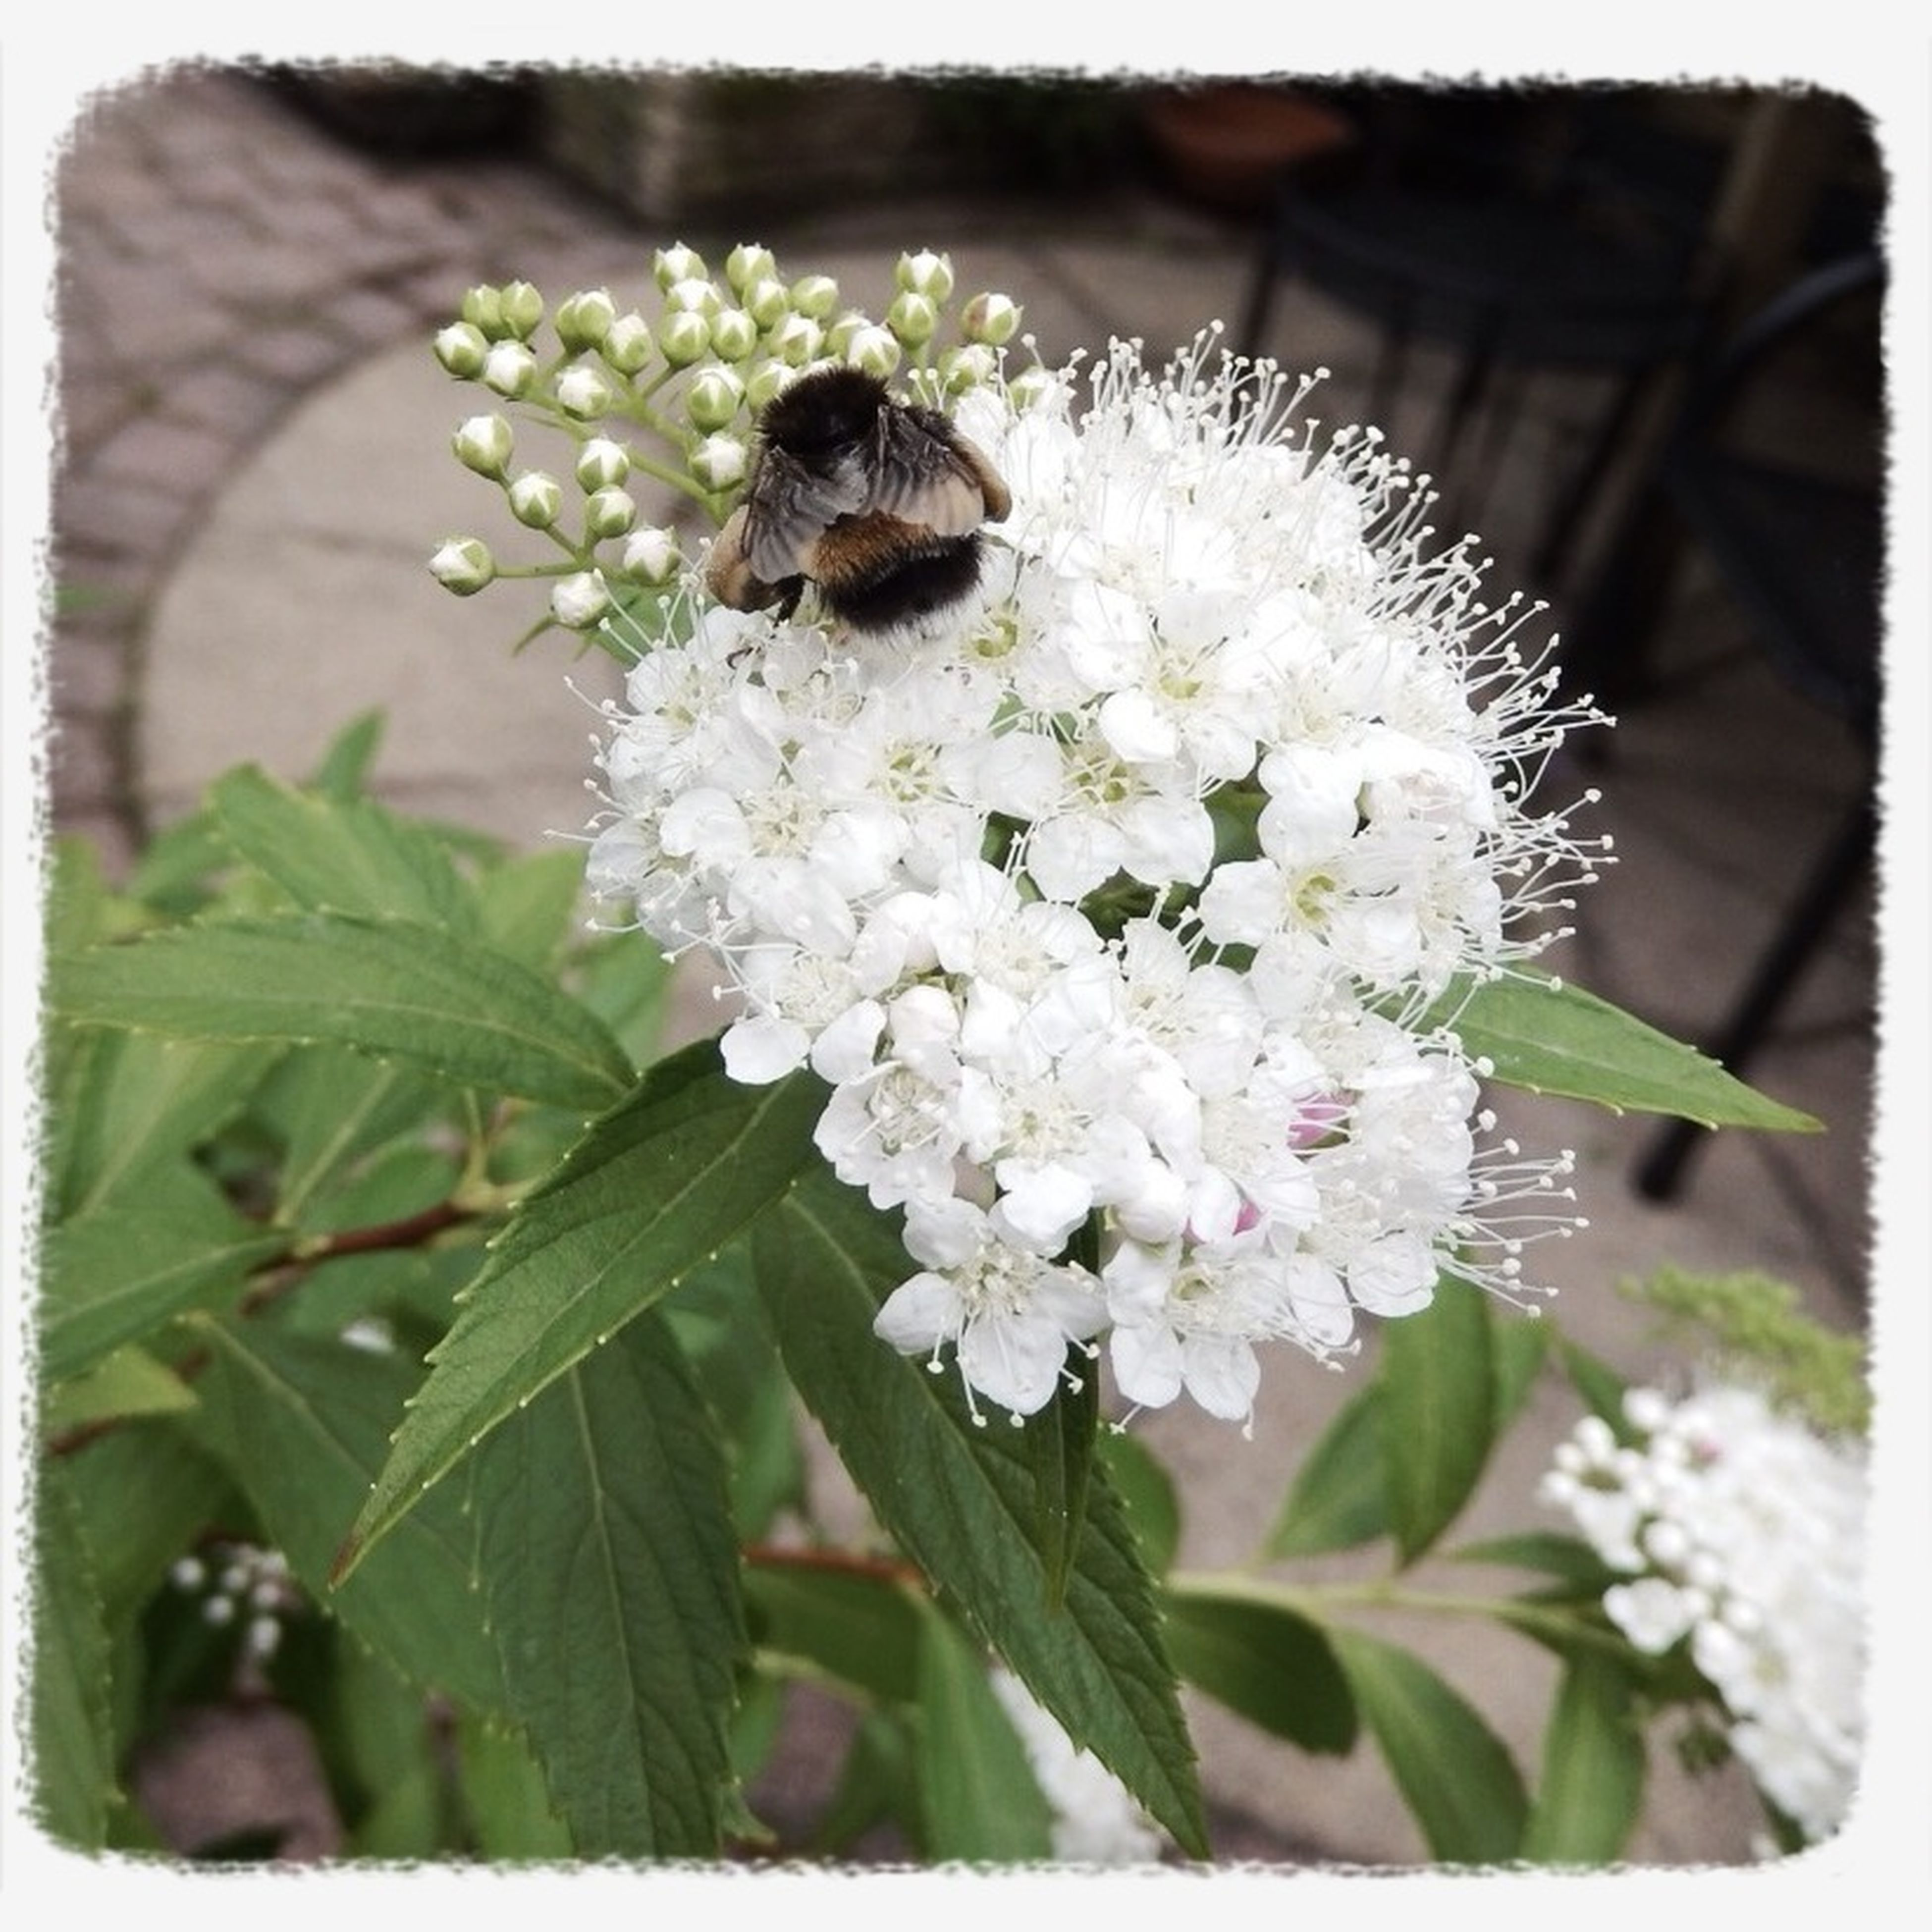 flower, insect, animal themes, one animal, wildlife, animals in the wild, freshness, fragility, growth, white color, close-up, transfer print, beauty in nature, petal, nature, flower head, focus on foreground, bee, pollination, auto post production filter